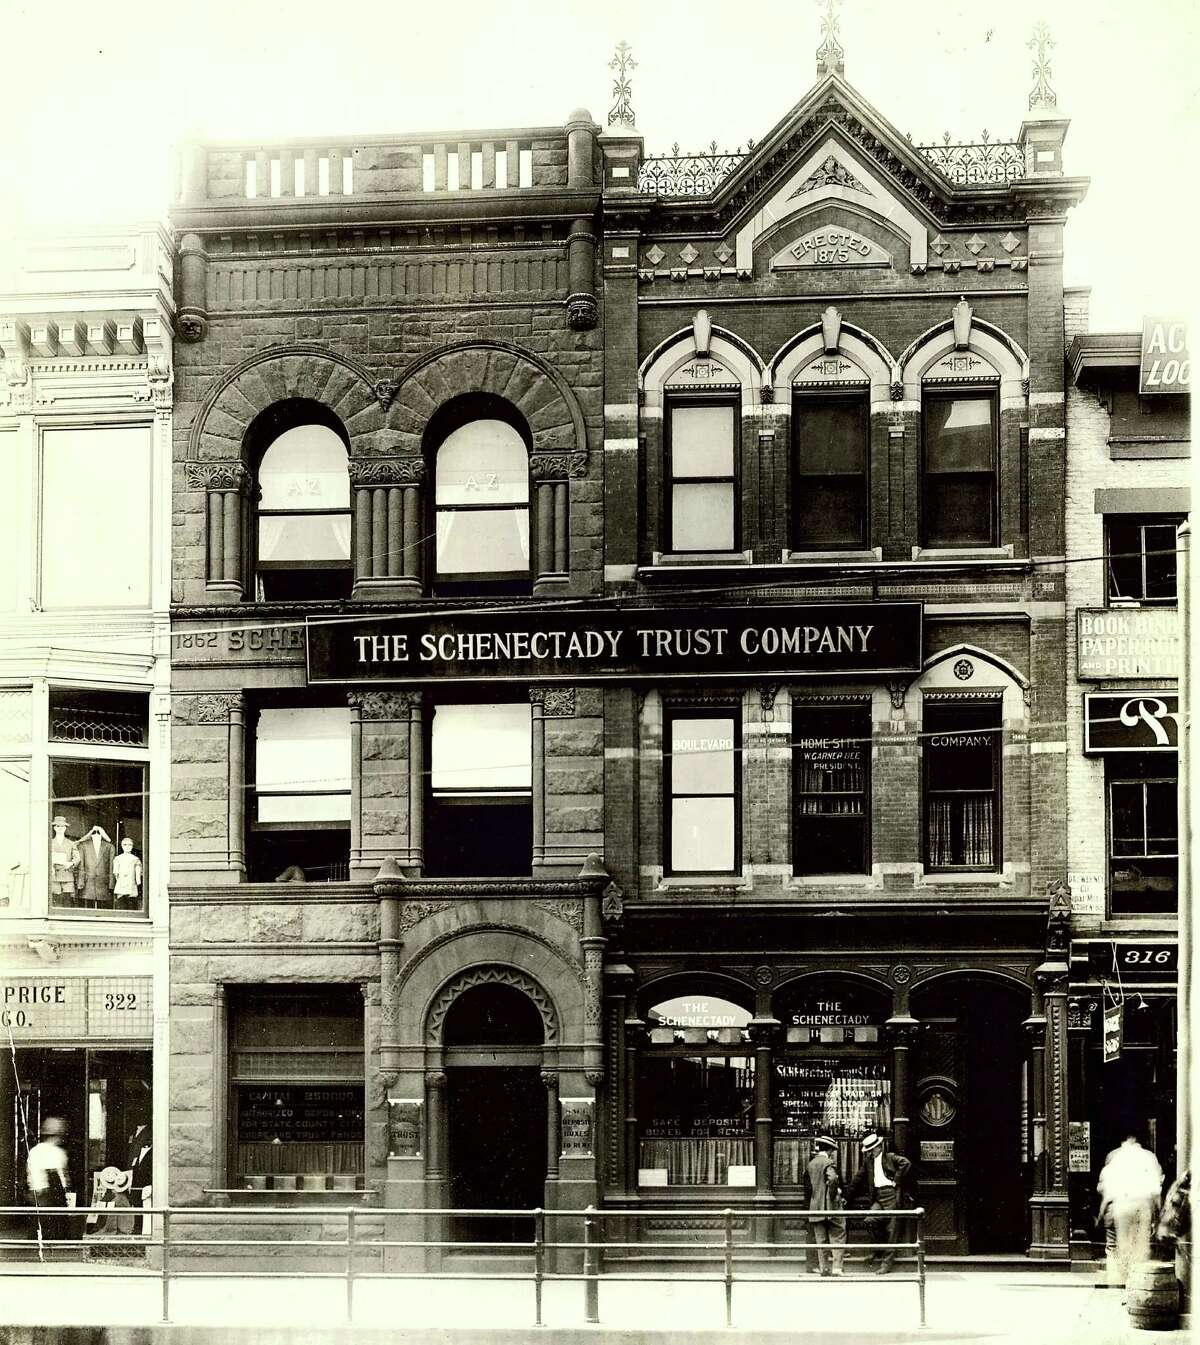 Click through the slideshow for more historic photos from Schenectady. Historic Schenectady: The Schenectady Trust Company on State Street, c. 1936.